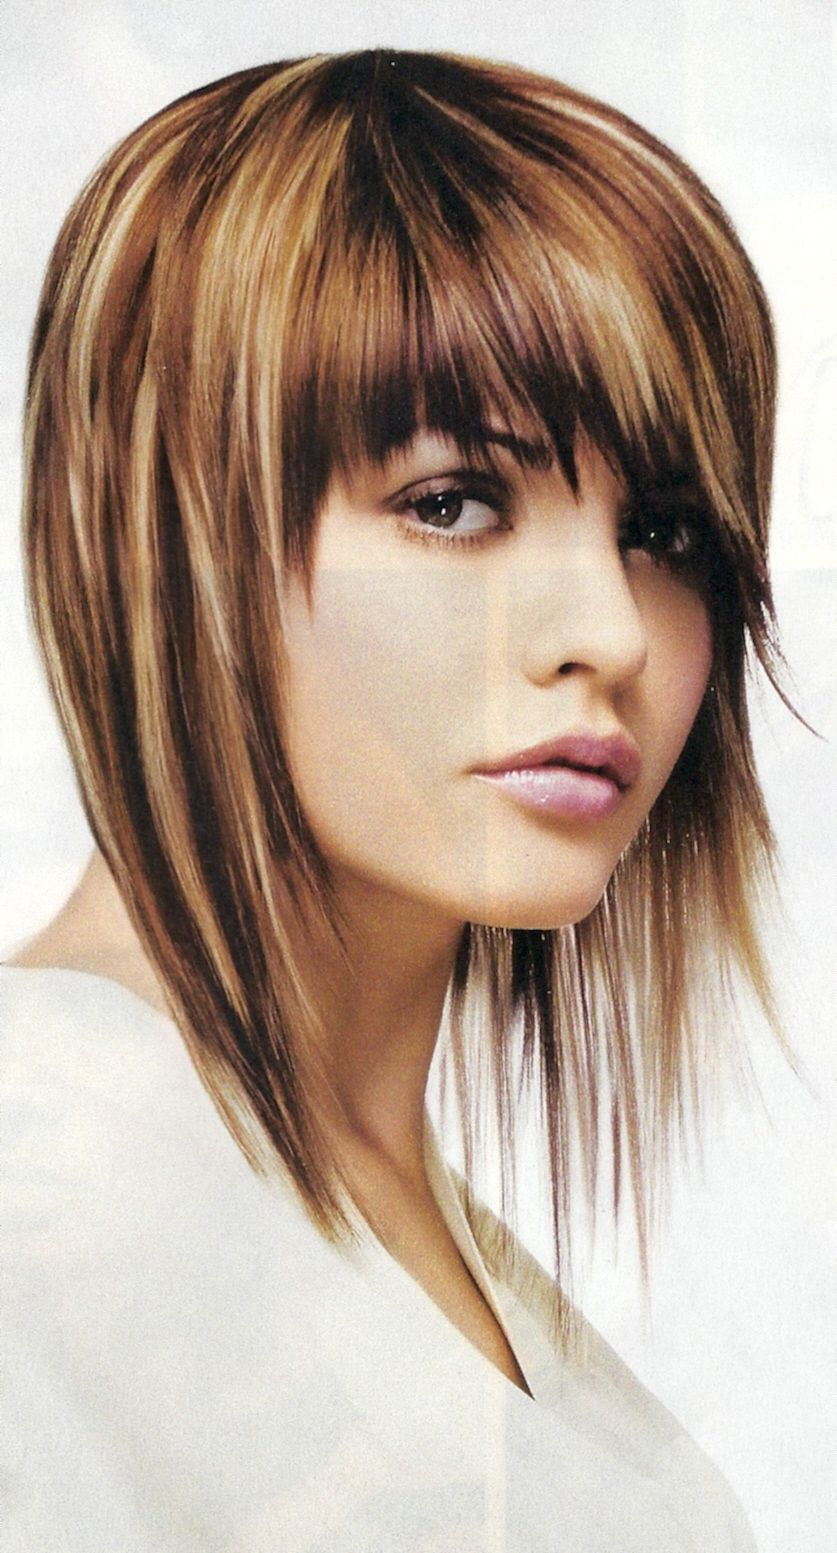 Add More Color To Your Life Shear Envy Salon Located In Bellevue